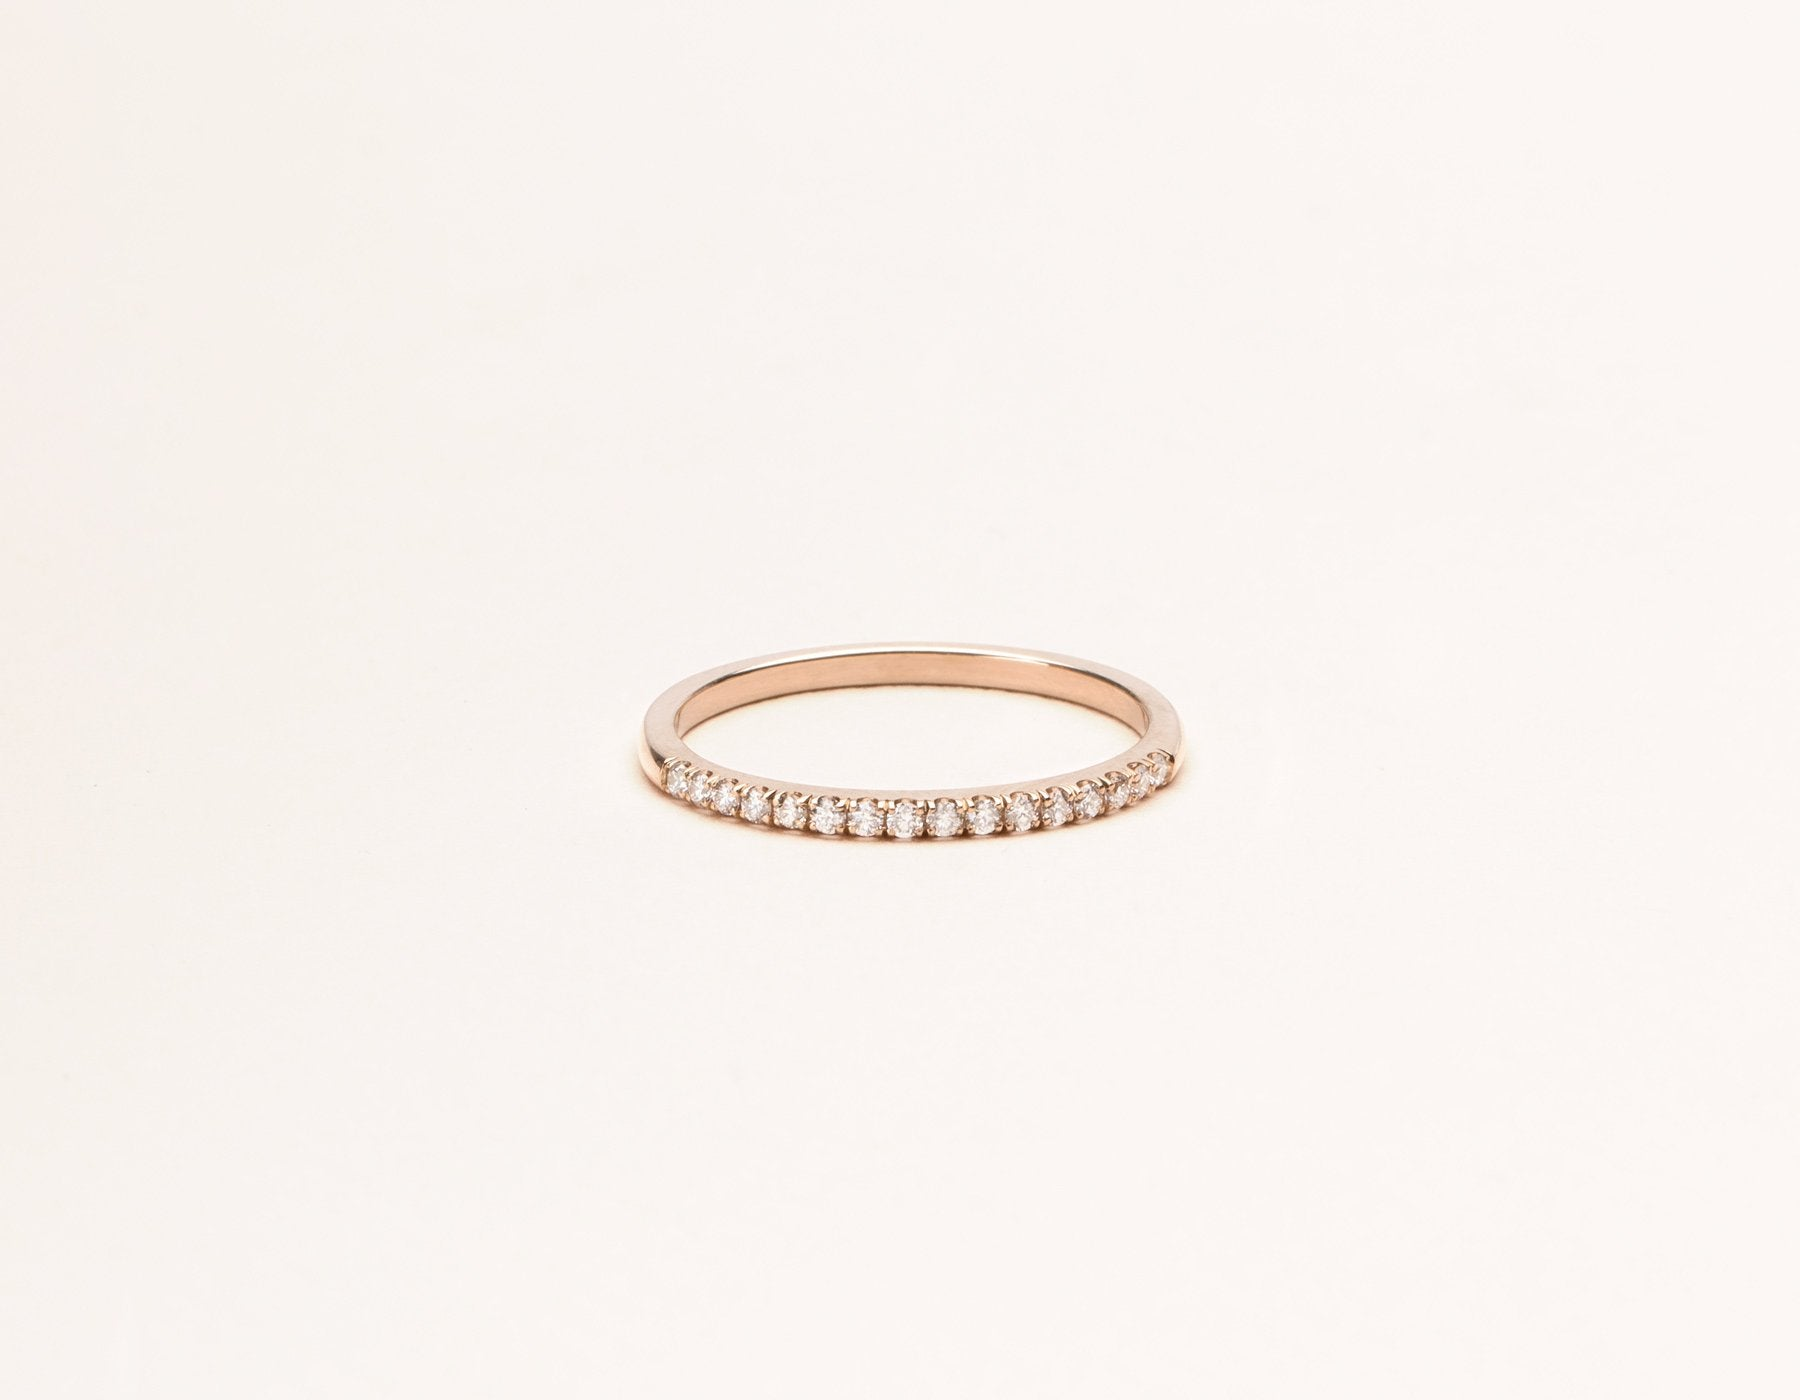 Classic minimalist Petite Diamond Pave Band ring 14k solid gold Vrai & Oro sustainable jewelry, 14K Rose Gold